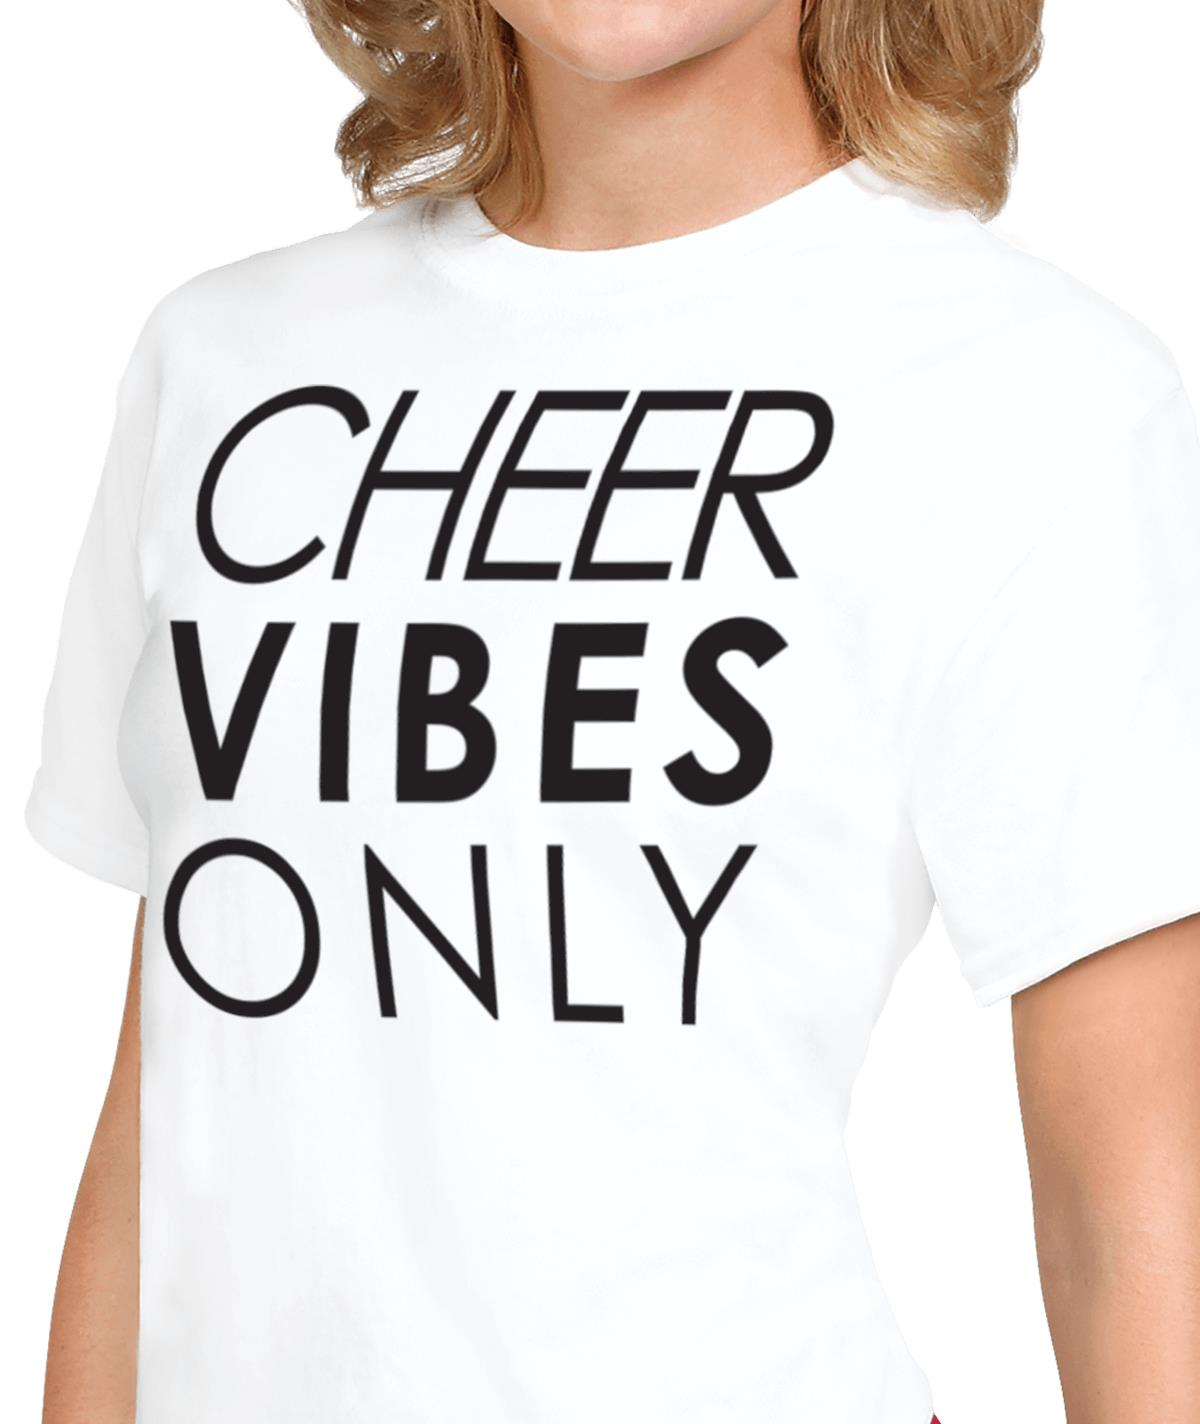 Cheer Vibes Only Tee